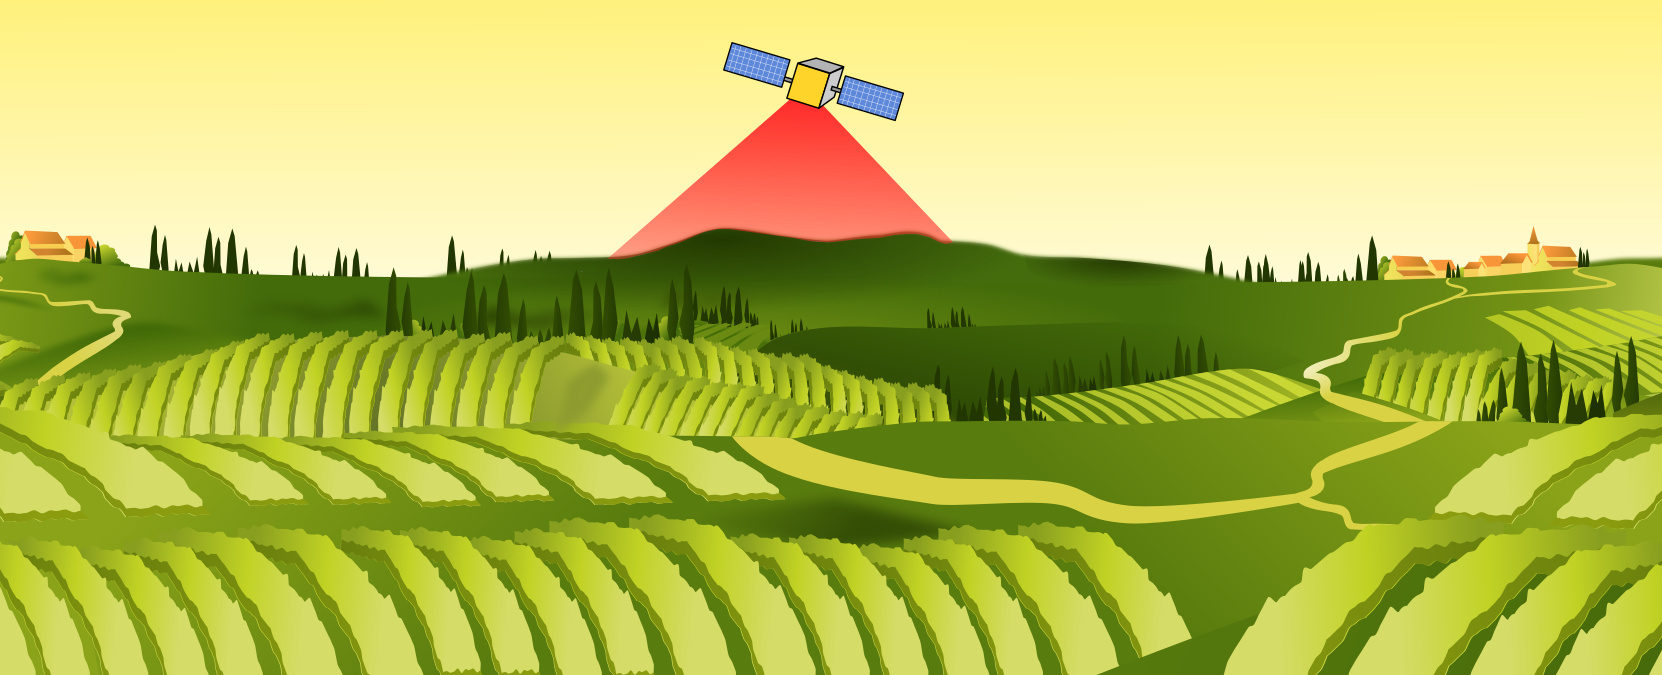 sky drones with Farming Agriculture Technology on De Lavion Porte Avions Aux Drones besides Summer Sound Effects Sale together with Jure Korber Photography in addition Farming Agriculture Technology besides 8 Tips For Marketing To Millennials Online.